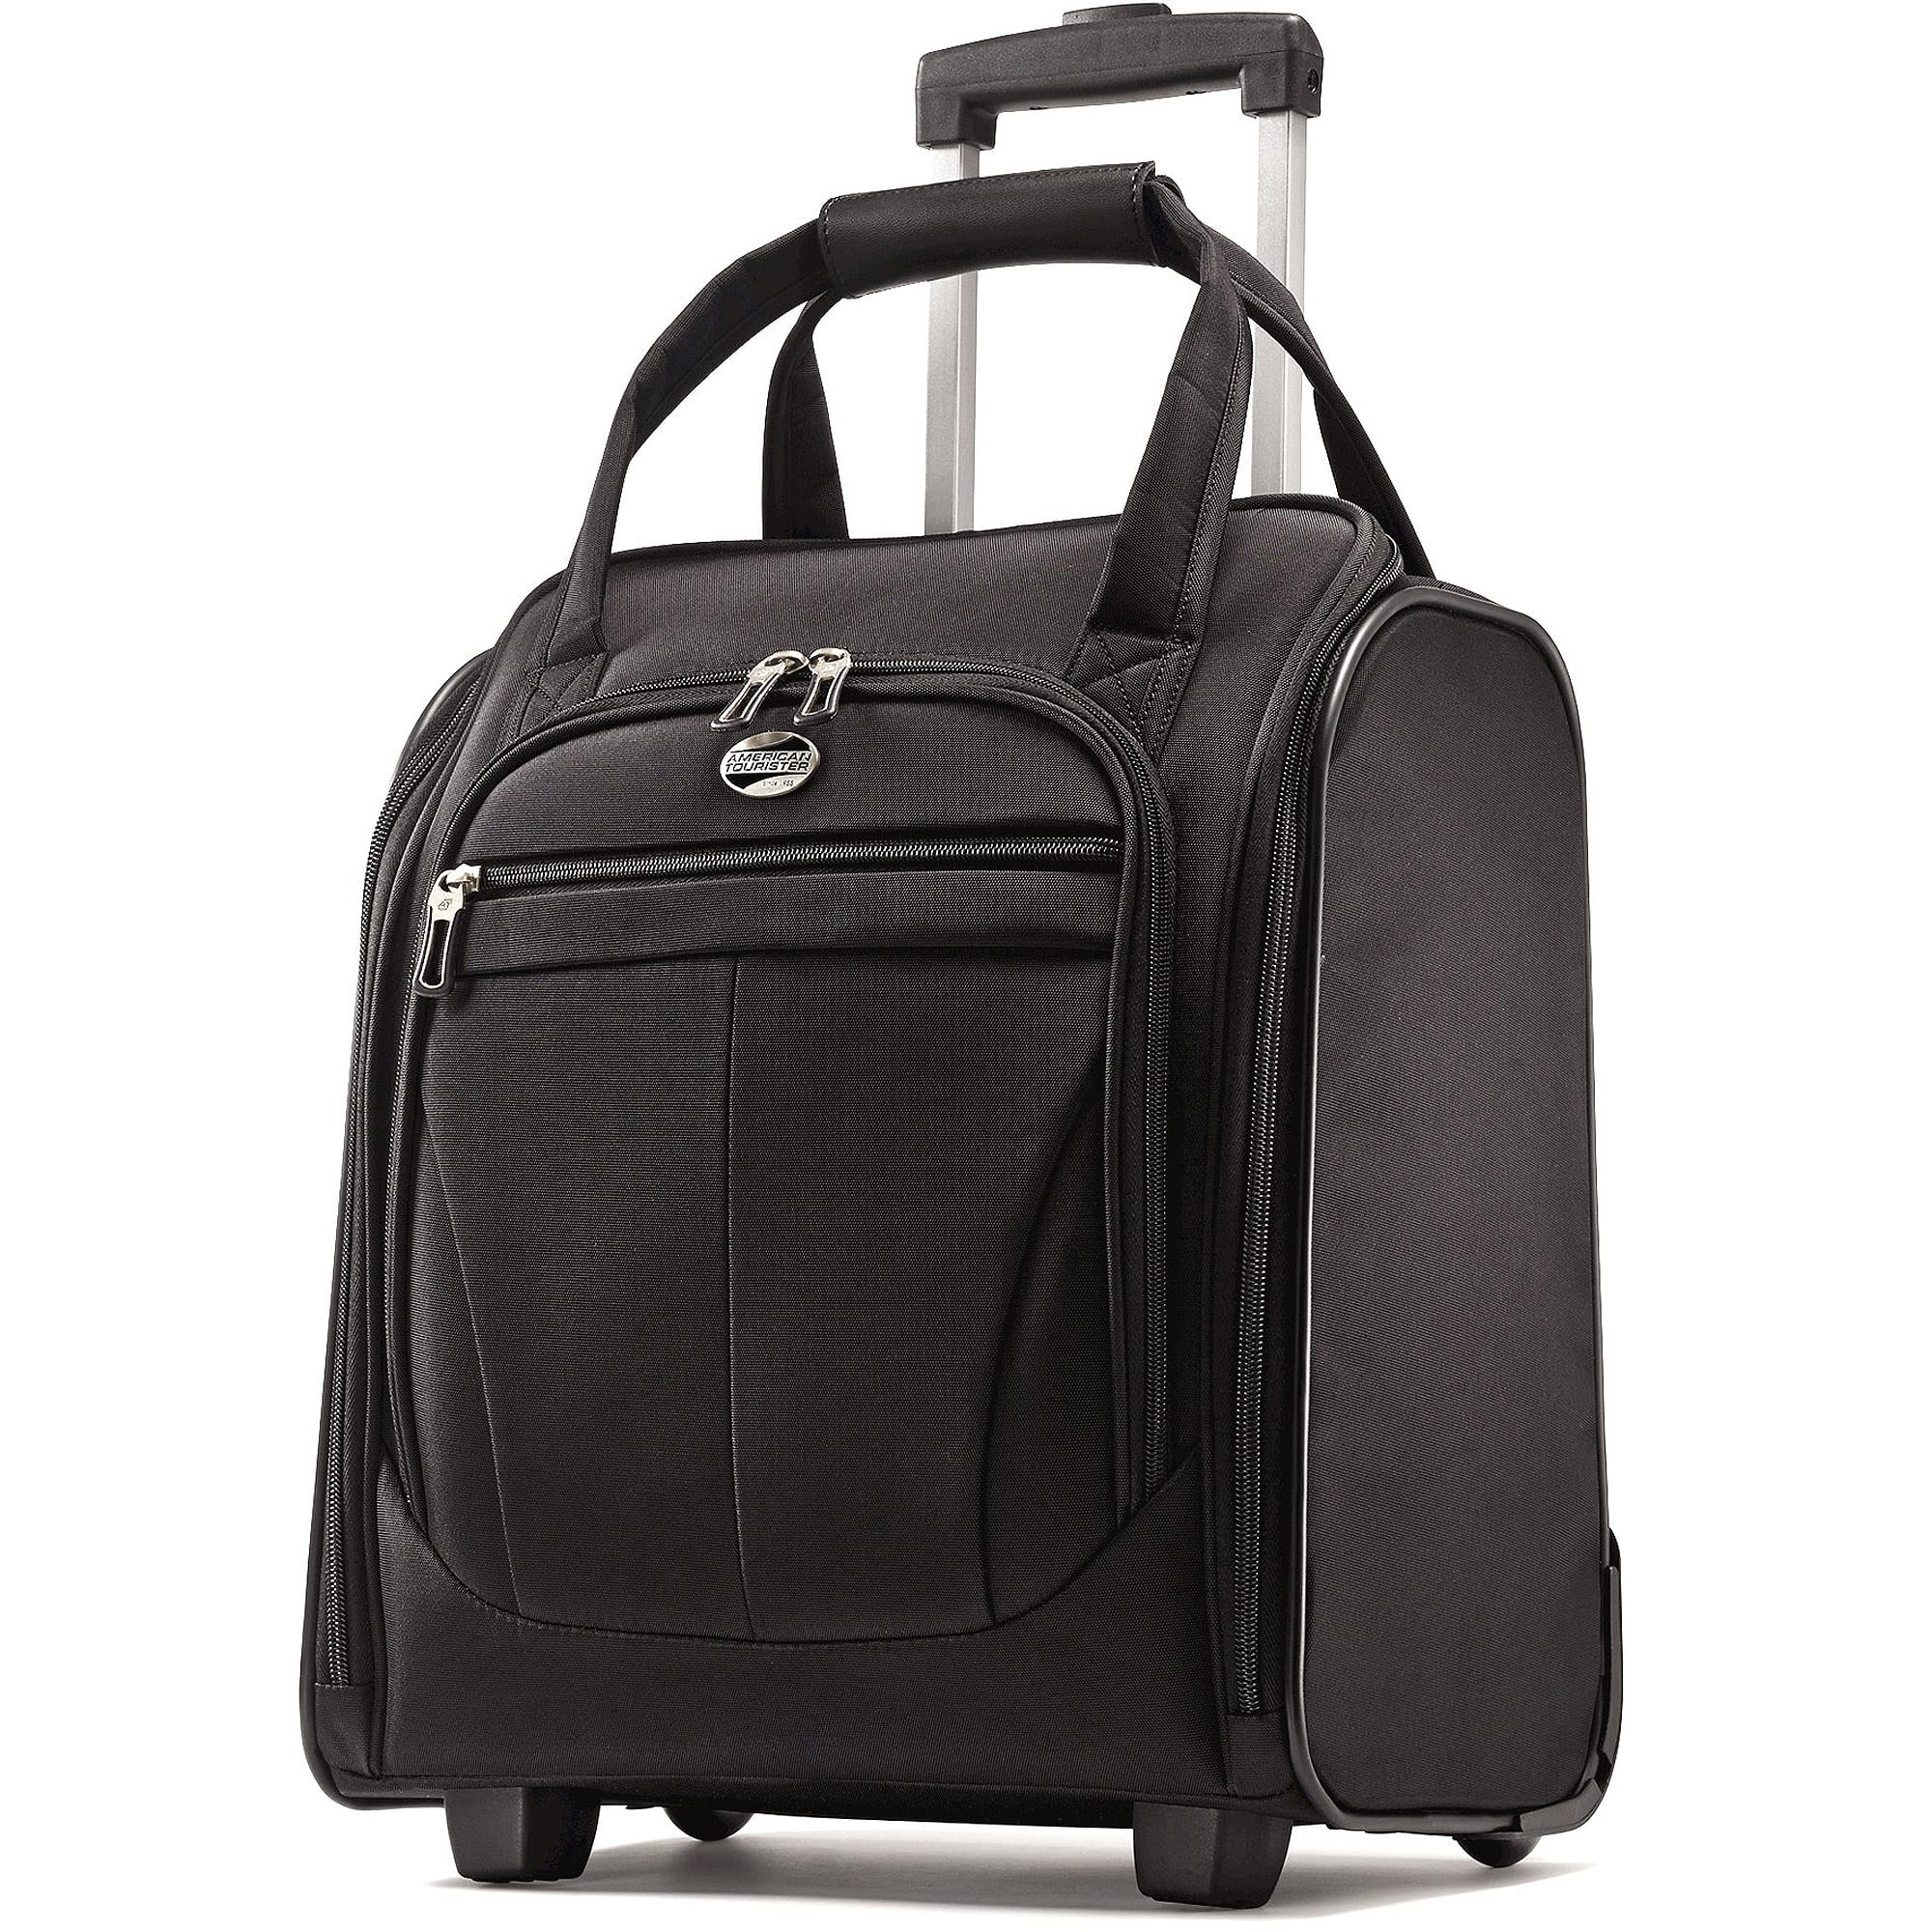 American Tourister Atmosphera II Overnight Tote (Spirit Airlines) - $28+Tax + Free Pickup